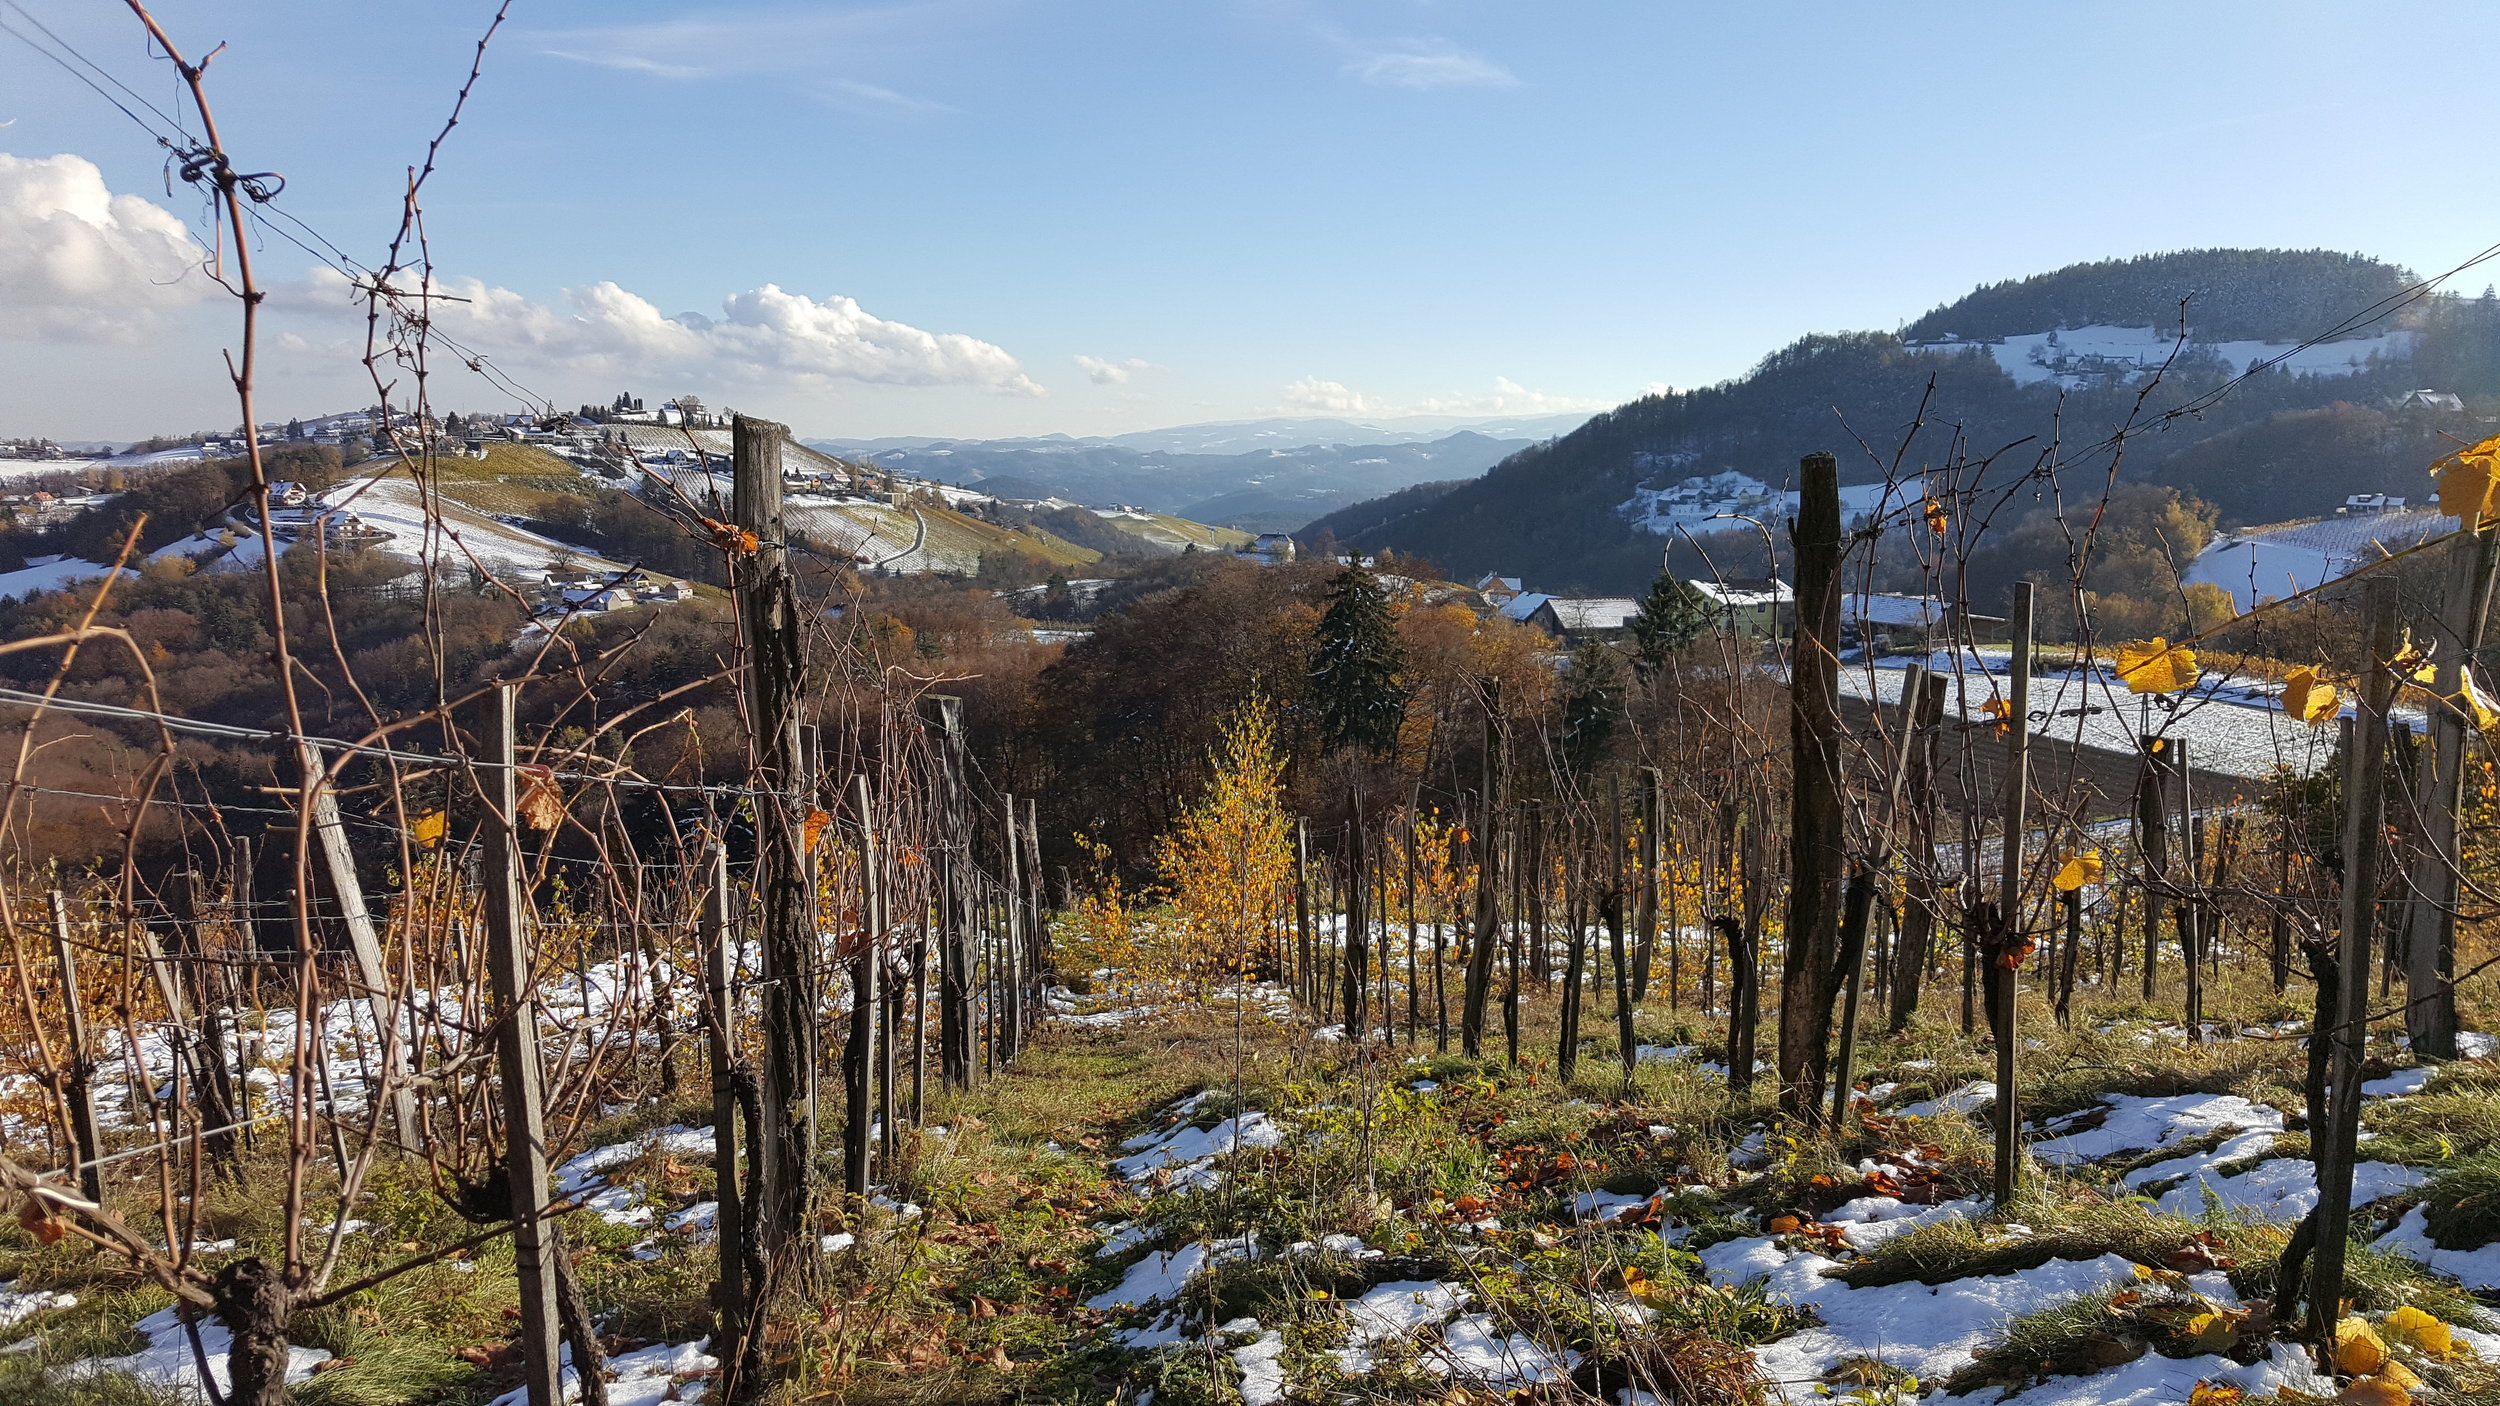 As well as Claude Courtois, Karl Schnabel in South Styria, Austria, is one of Campbell's favourite winemakers. His vineyard called Koregg is pictured above.  Photo by Campbell Burton.